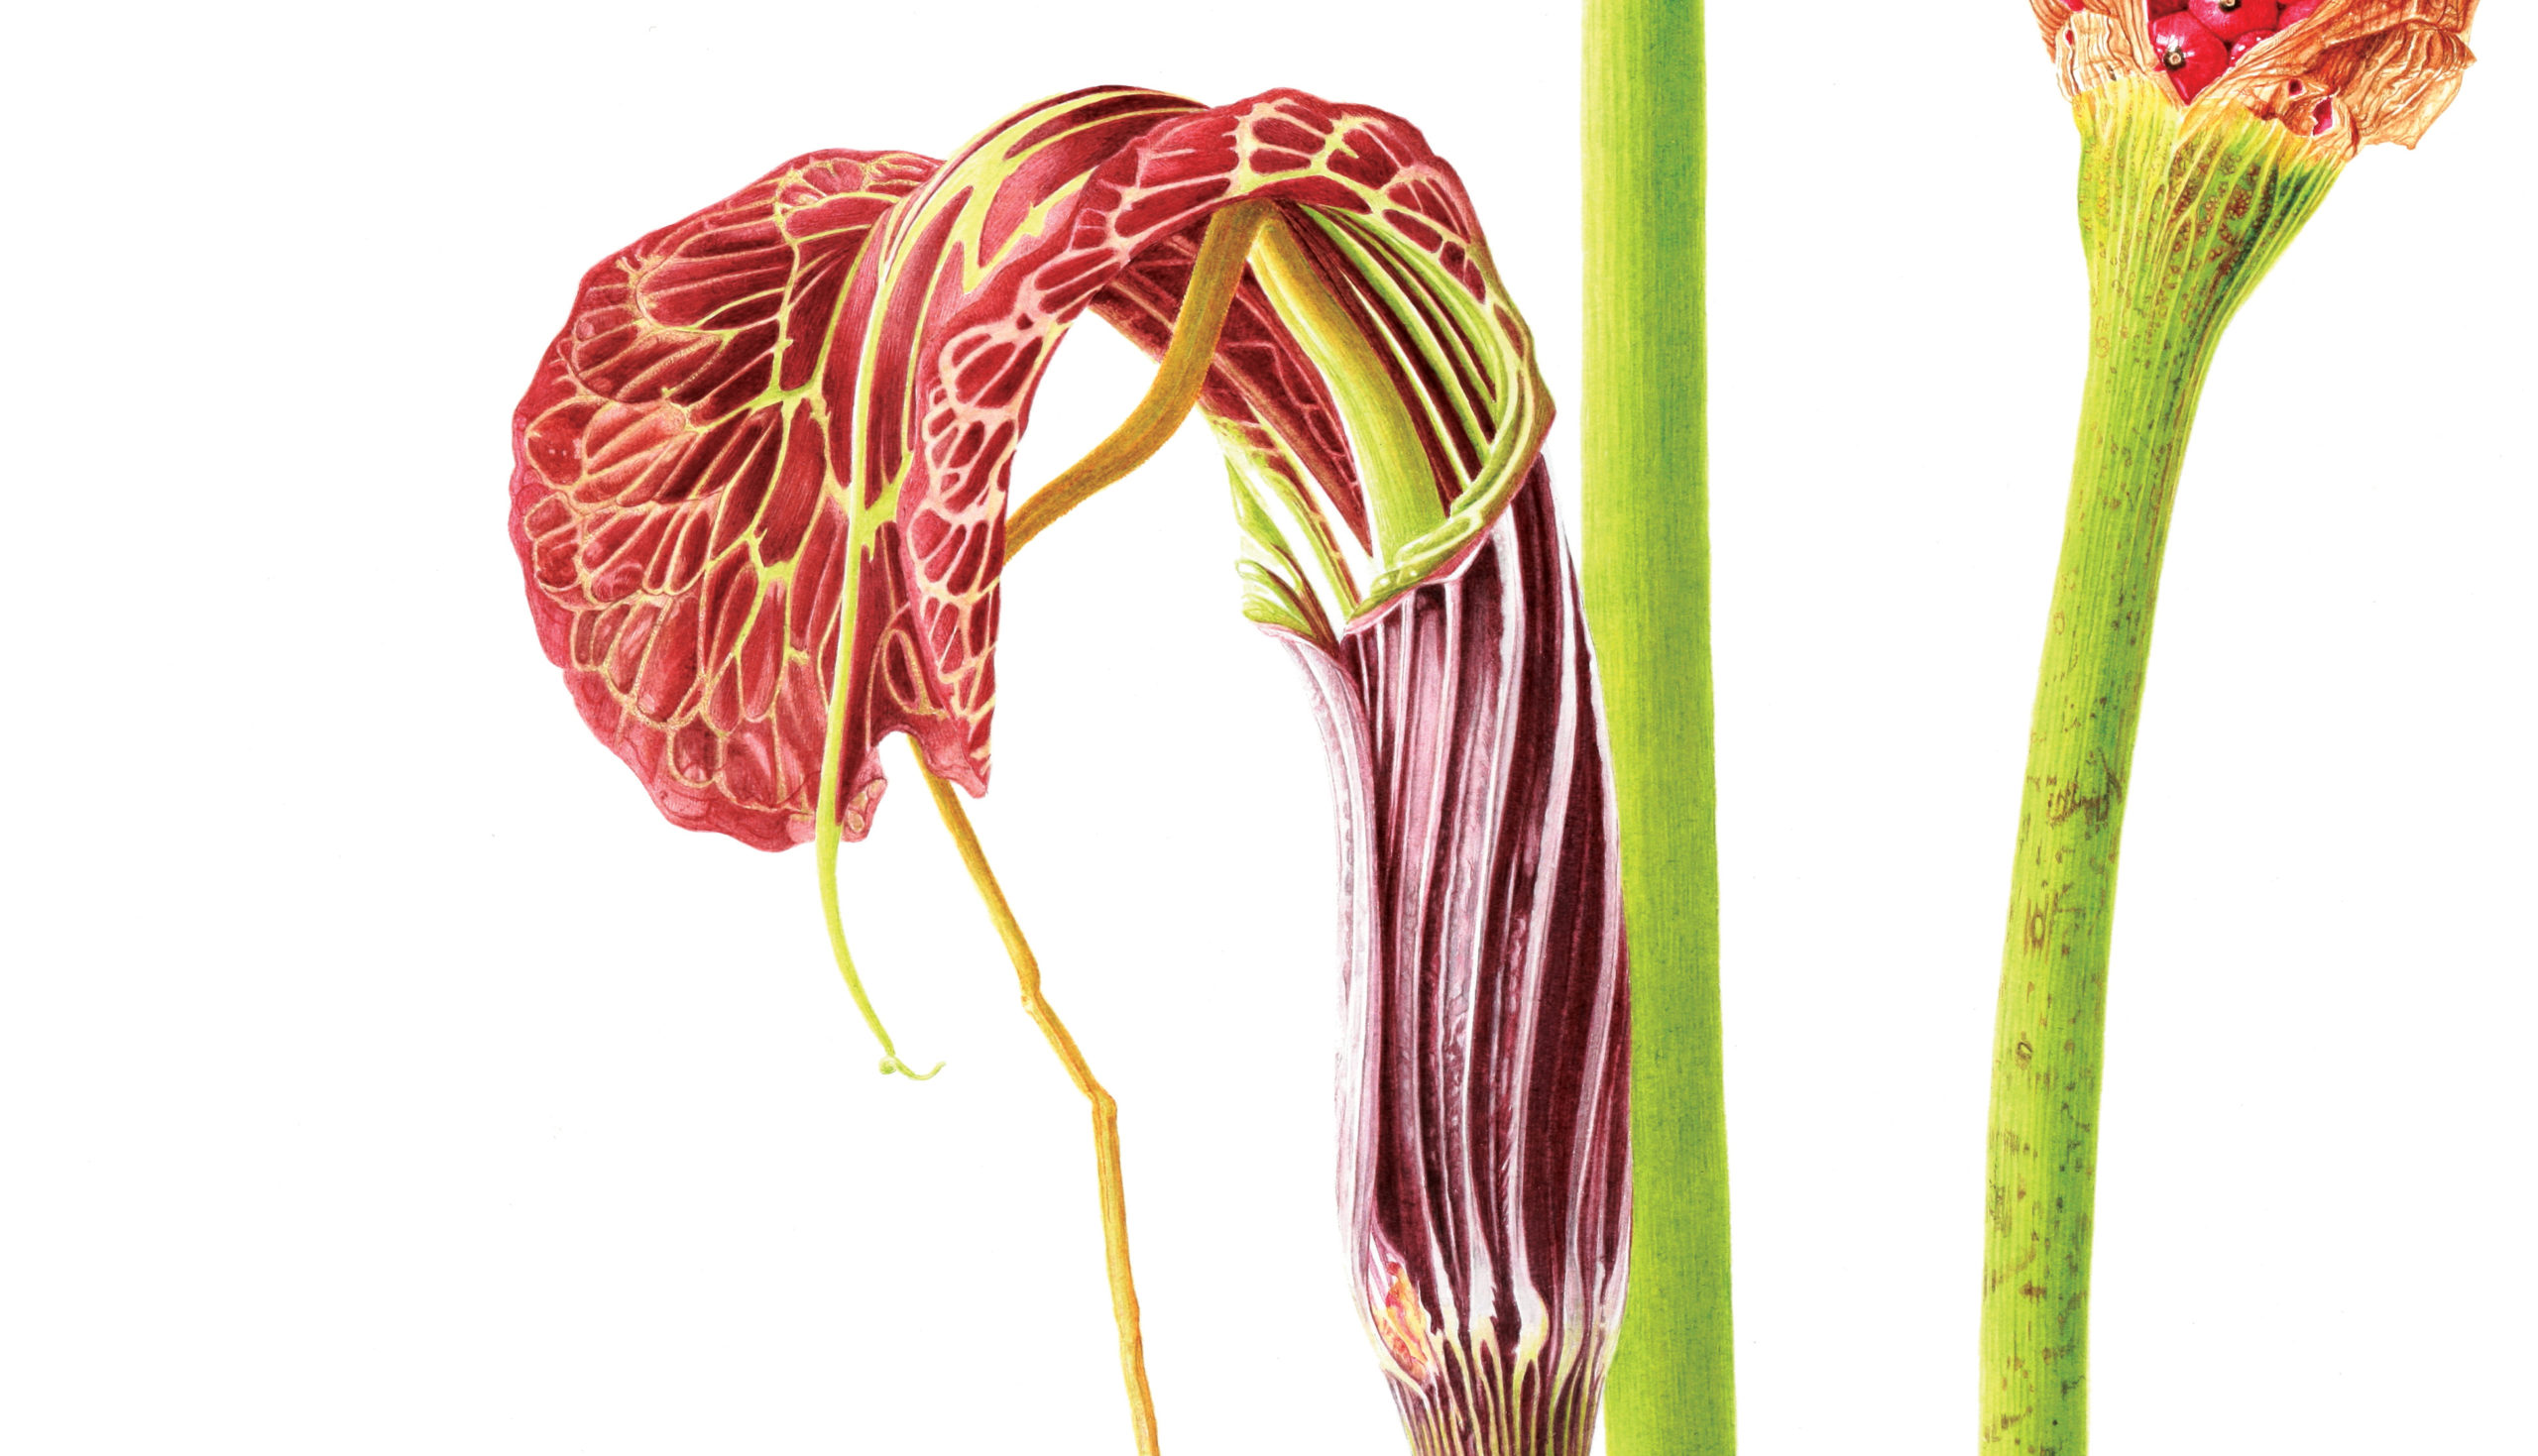 Arisaema griffithii watercolour on Fabriano 5 - detail